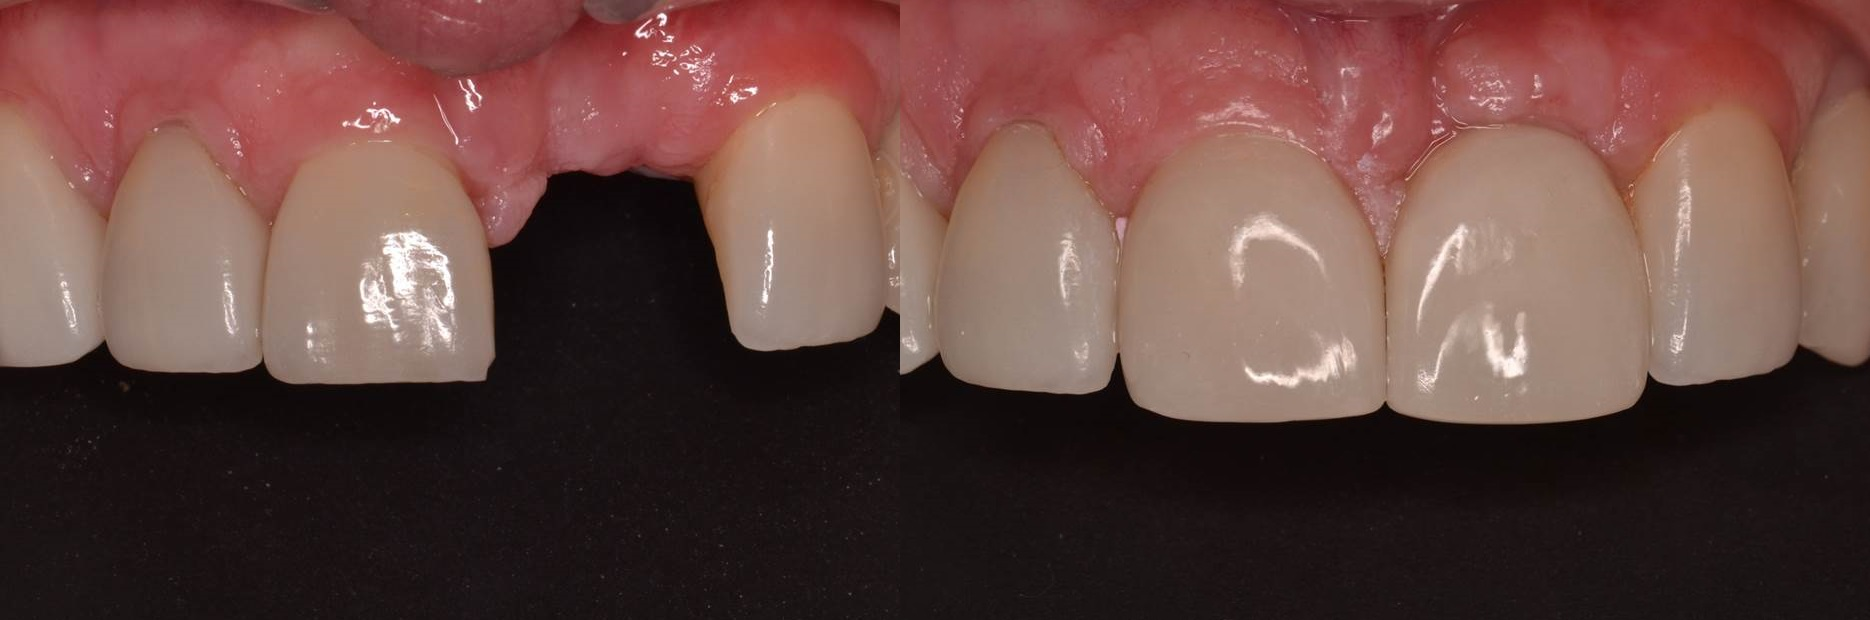 Figure 4 c; Before and after photo of restored dental implant to replace tooth #9 (from Figure 2 plan). Implant surgery performed by Dr. Andrew J. Carmosino, DDS, MS